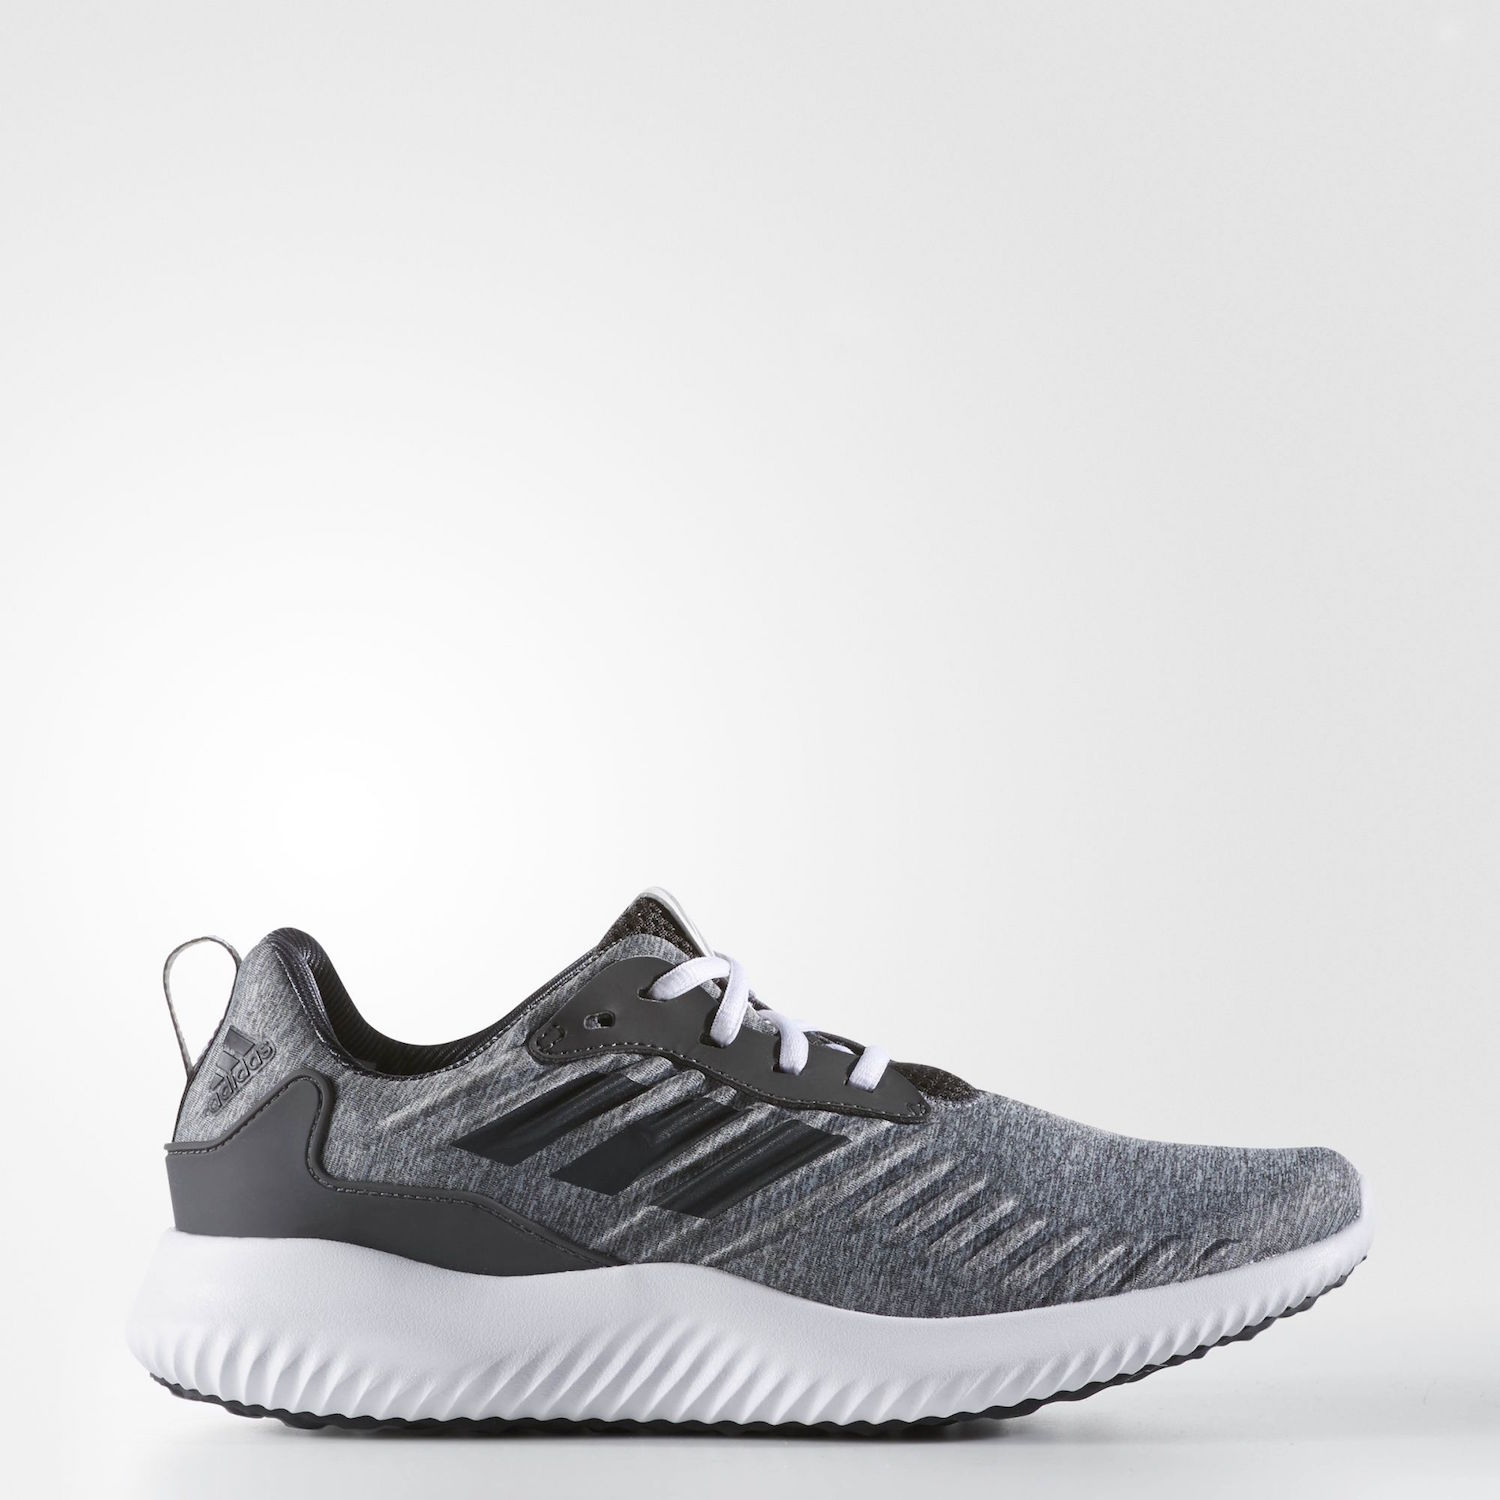 The New adidas AlphaBounce RC Debuts Overseas - WearTesters 9f25fb0a9